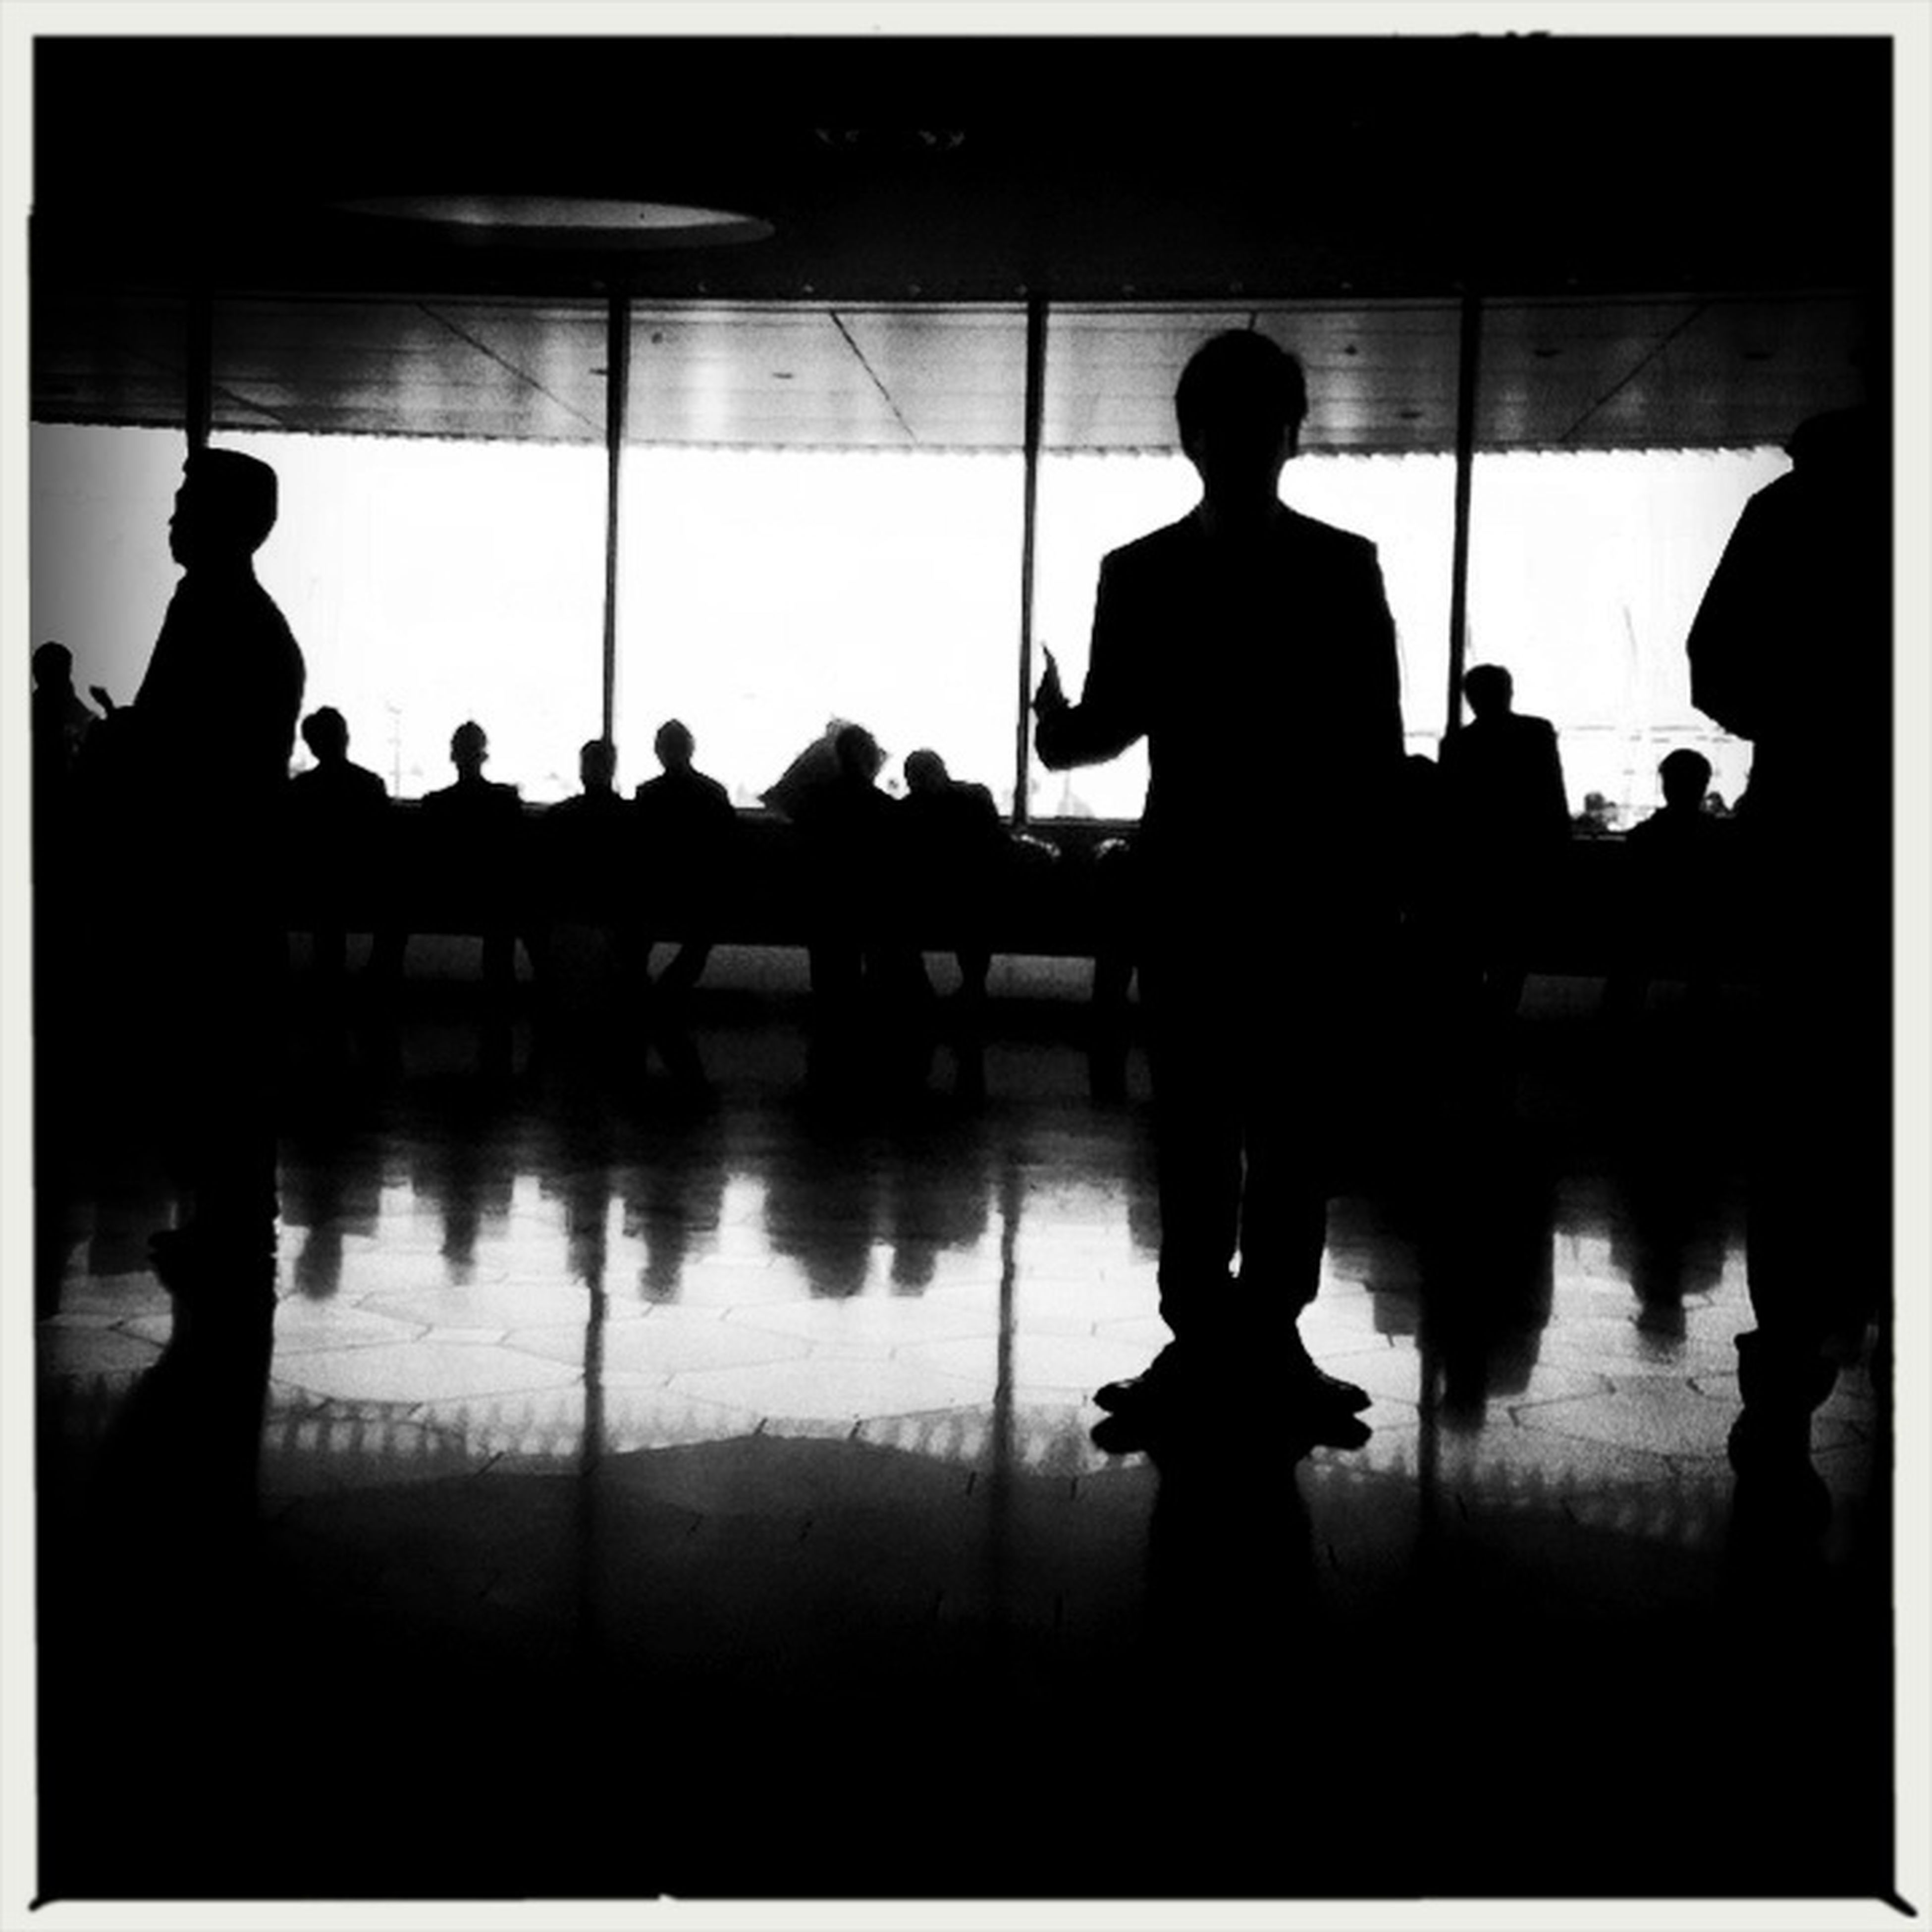 silhouette, men, indoors, transfer print, lifestyles, standing, reflection, auto post production filter, person, walking, full length, leisure activity, outline, rear view, illuminated, built structure, unrecognizable person